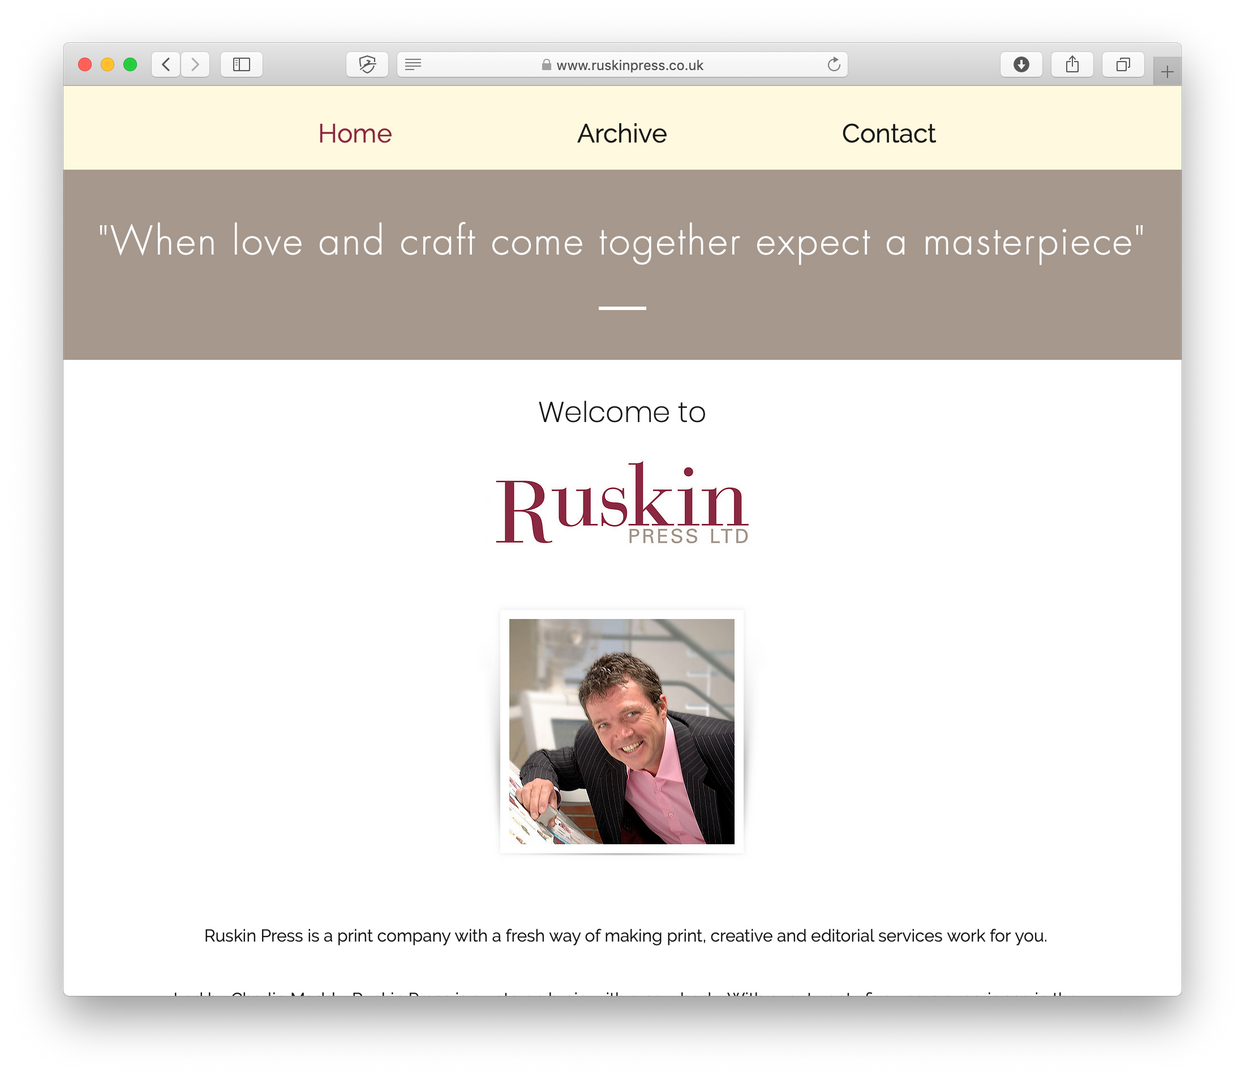 Client - Ruskin Press Ltd